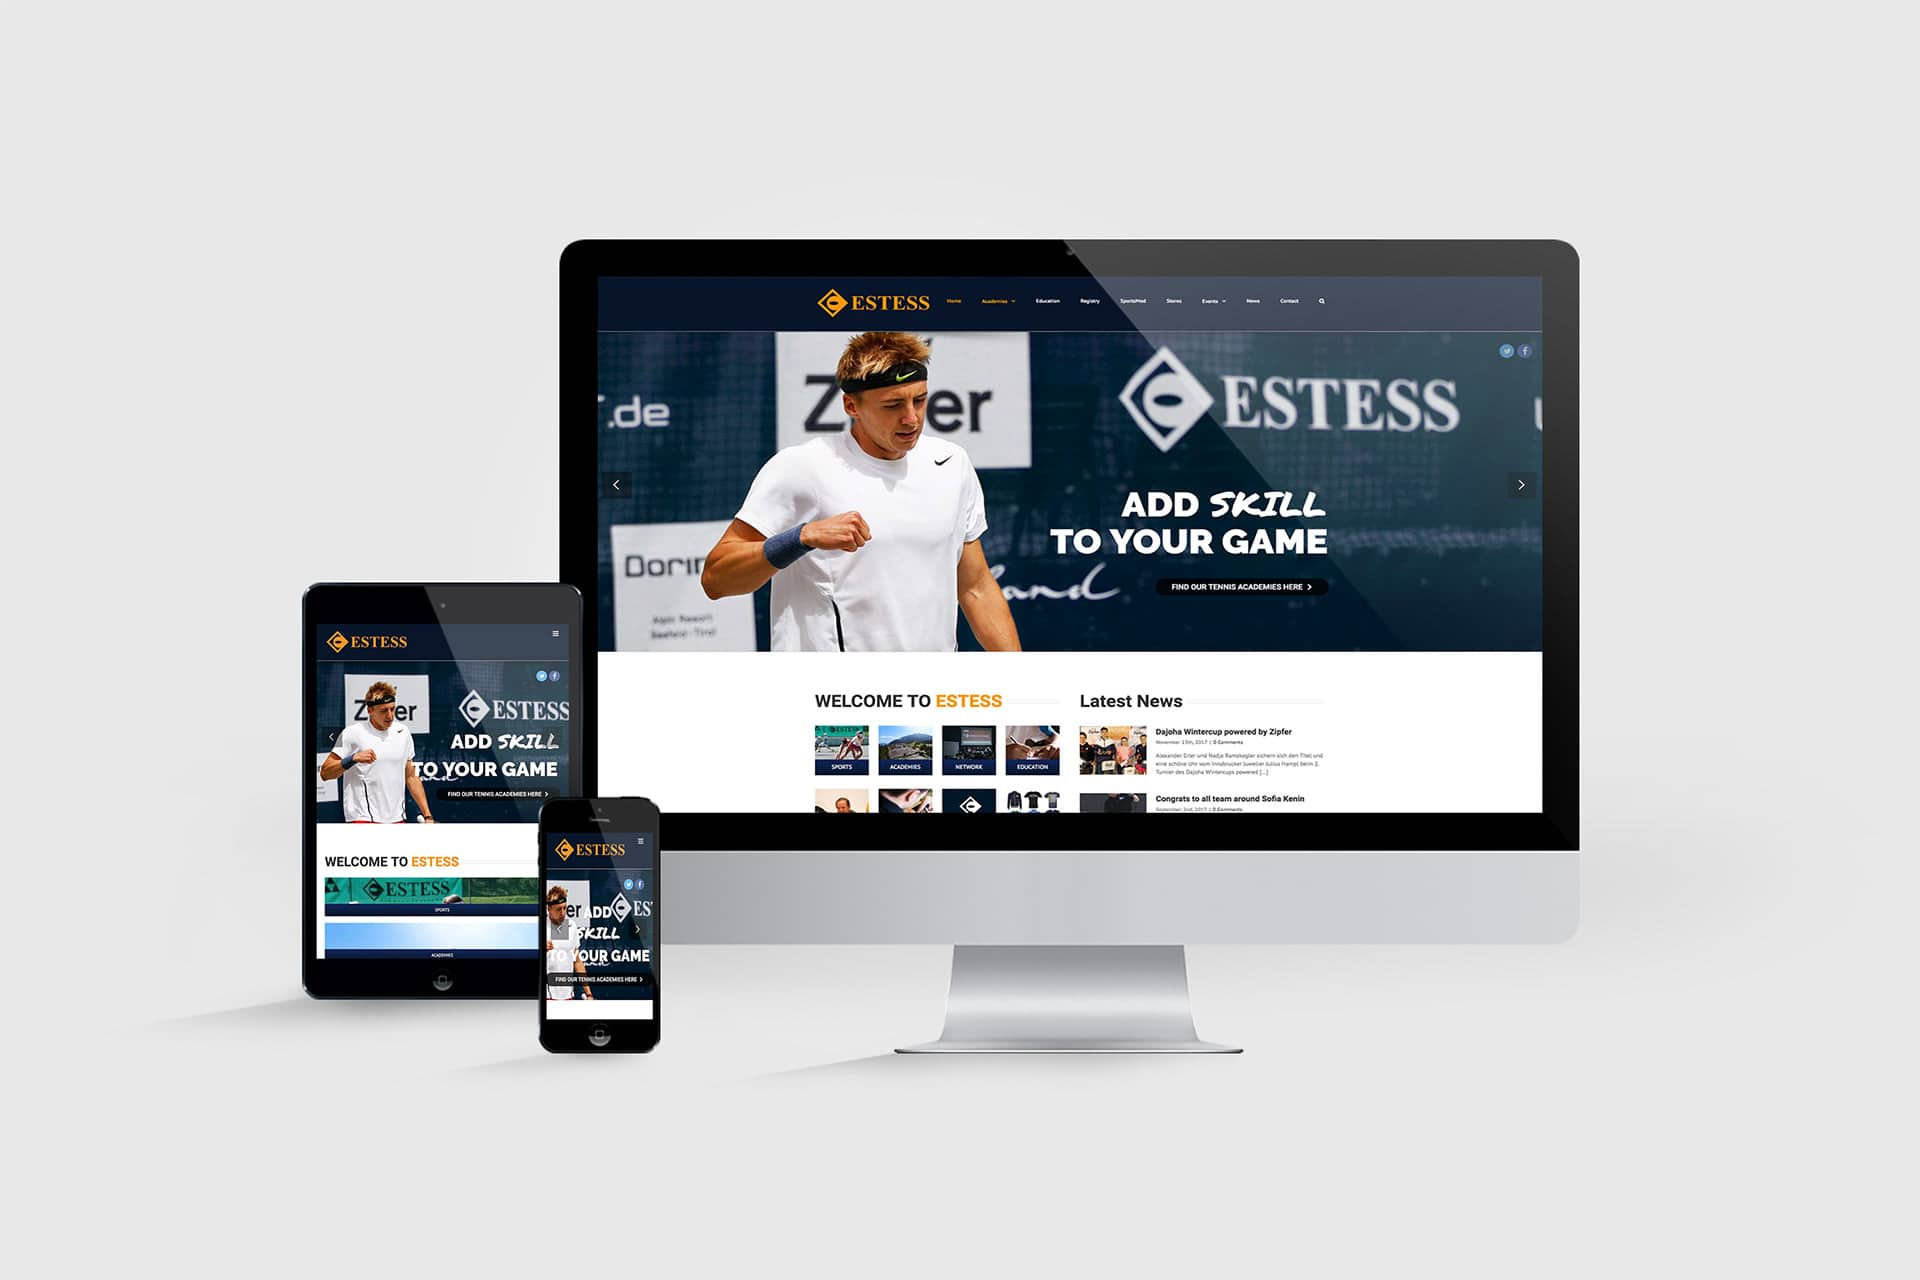 estess-website-mockup